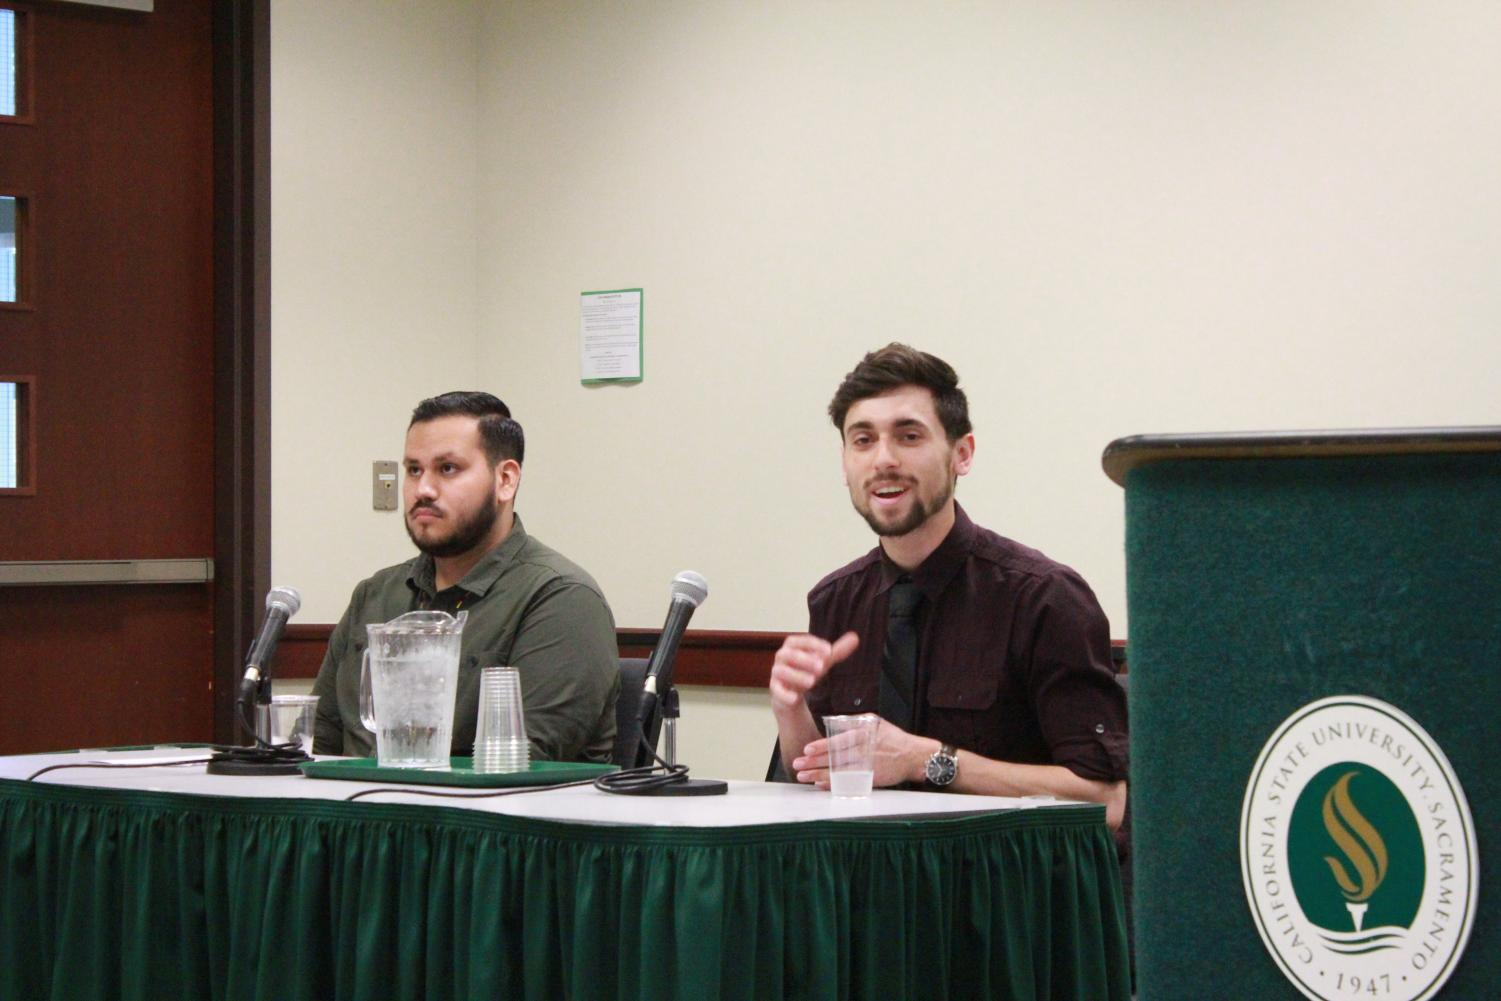 Tony Humphreys, right, and Jose Arias-Ruiz speak at an Associated Students, Inc. election candidates forum on Monday, April 2 in the University Union. Humphreys and Arias-Ruiz are running against each other to be vice president of academic affairs.